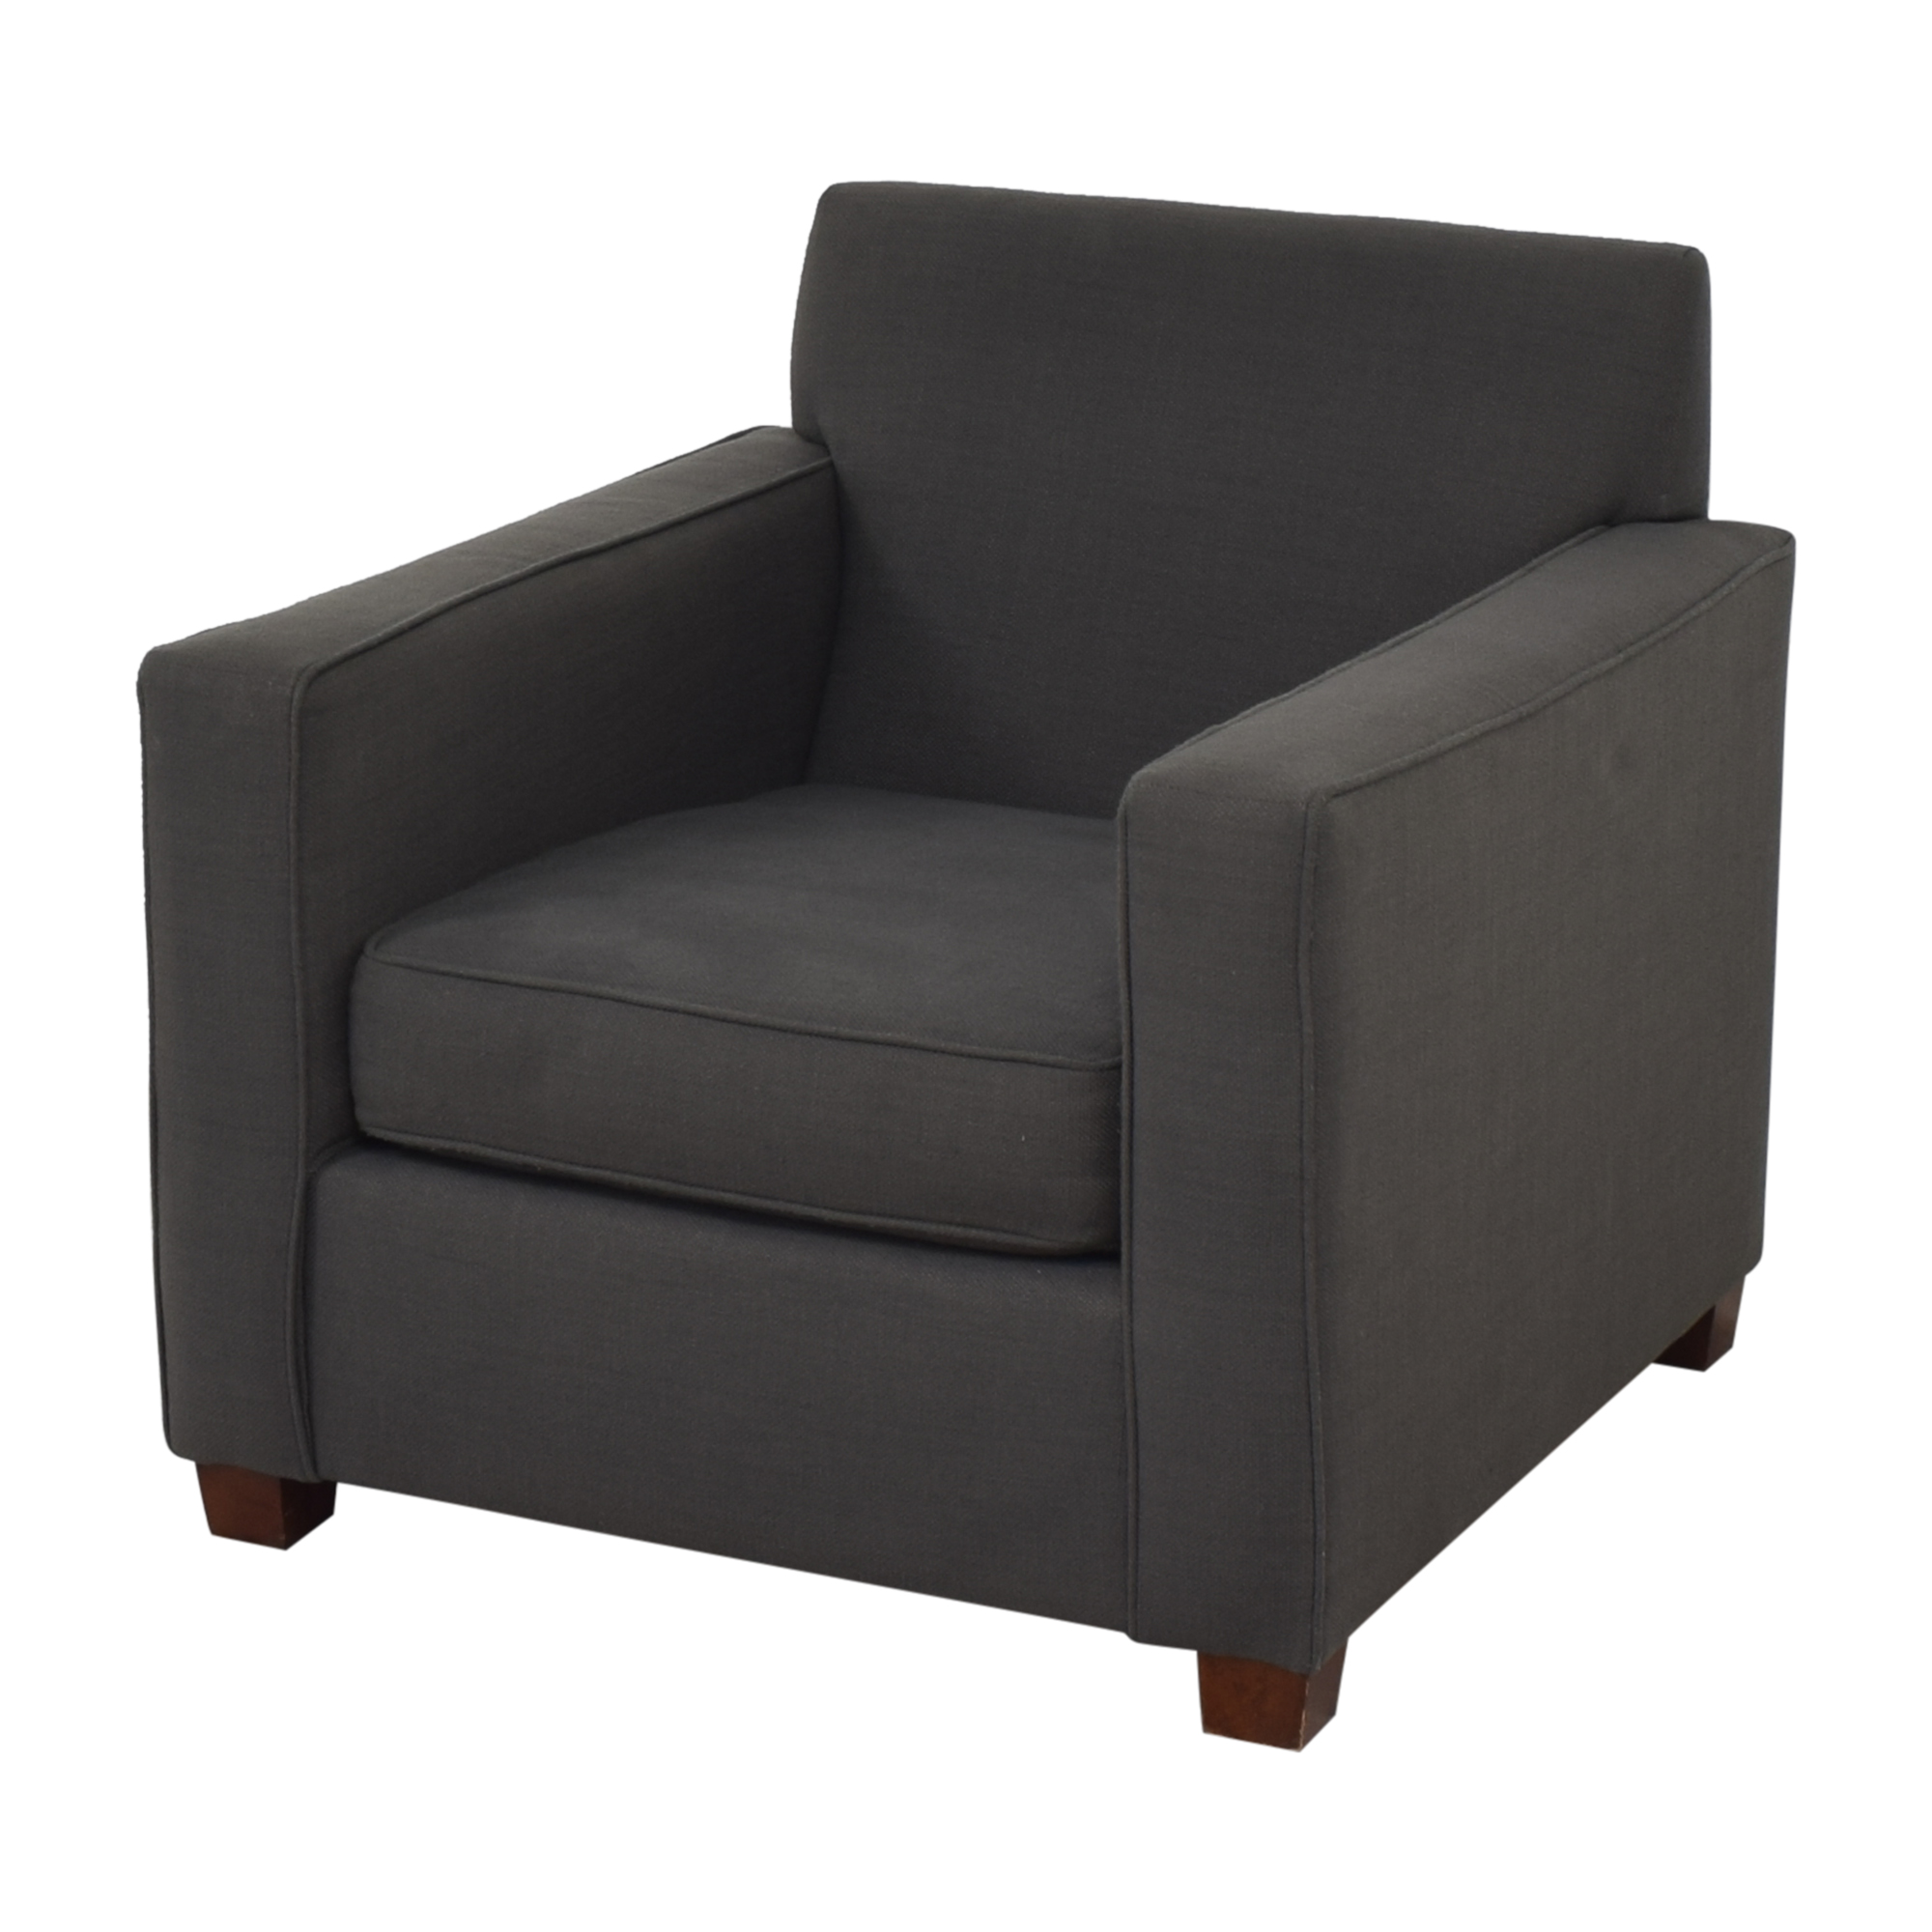 West Elm West Elm Henry Chair and Ottoman